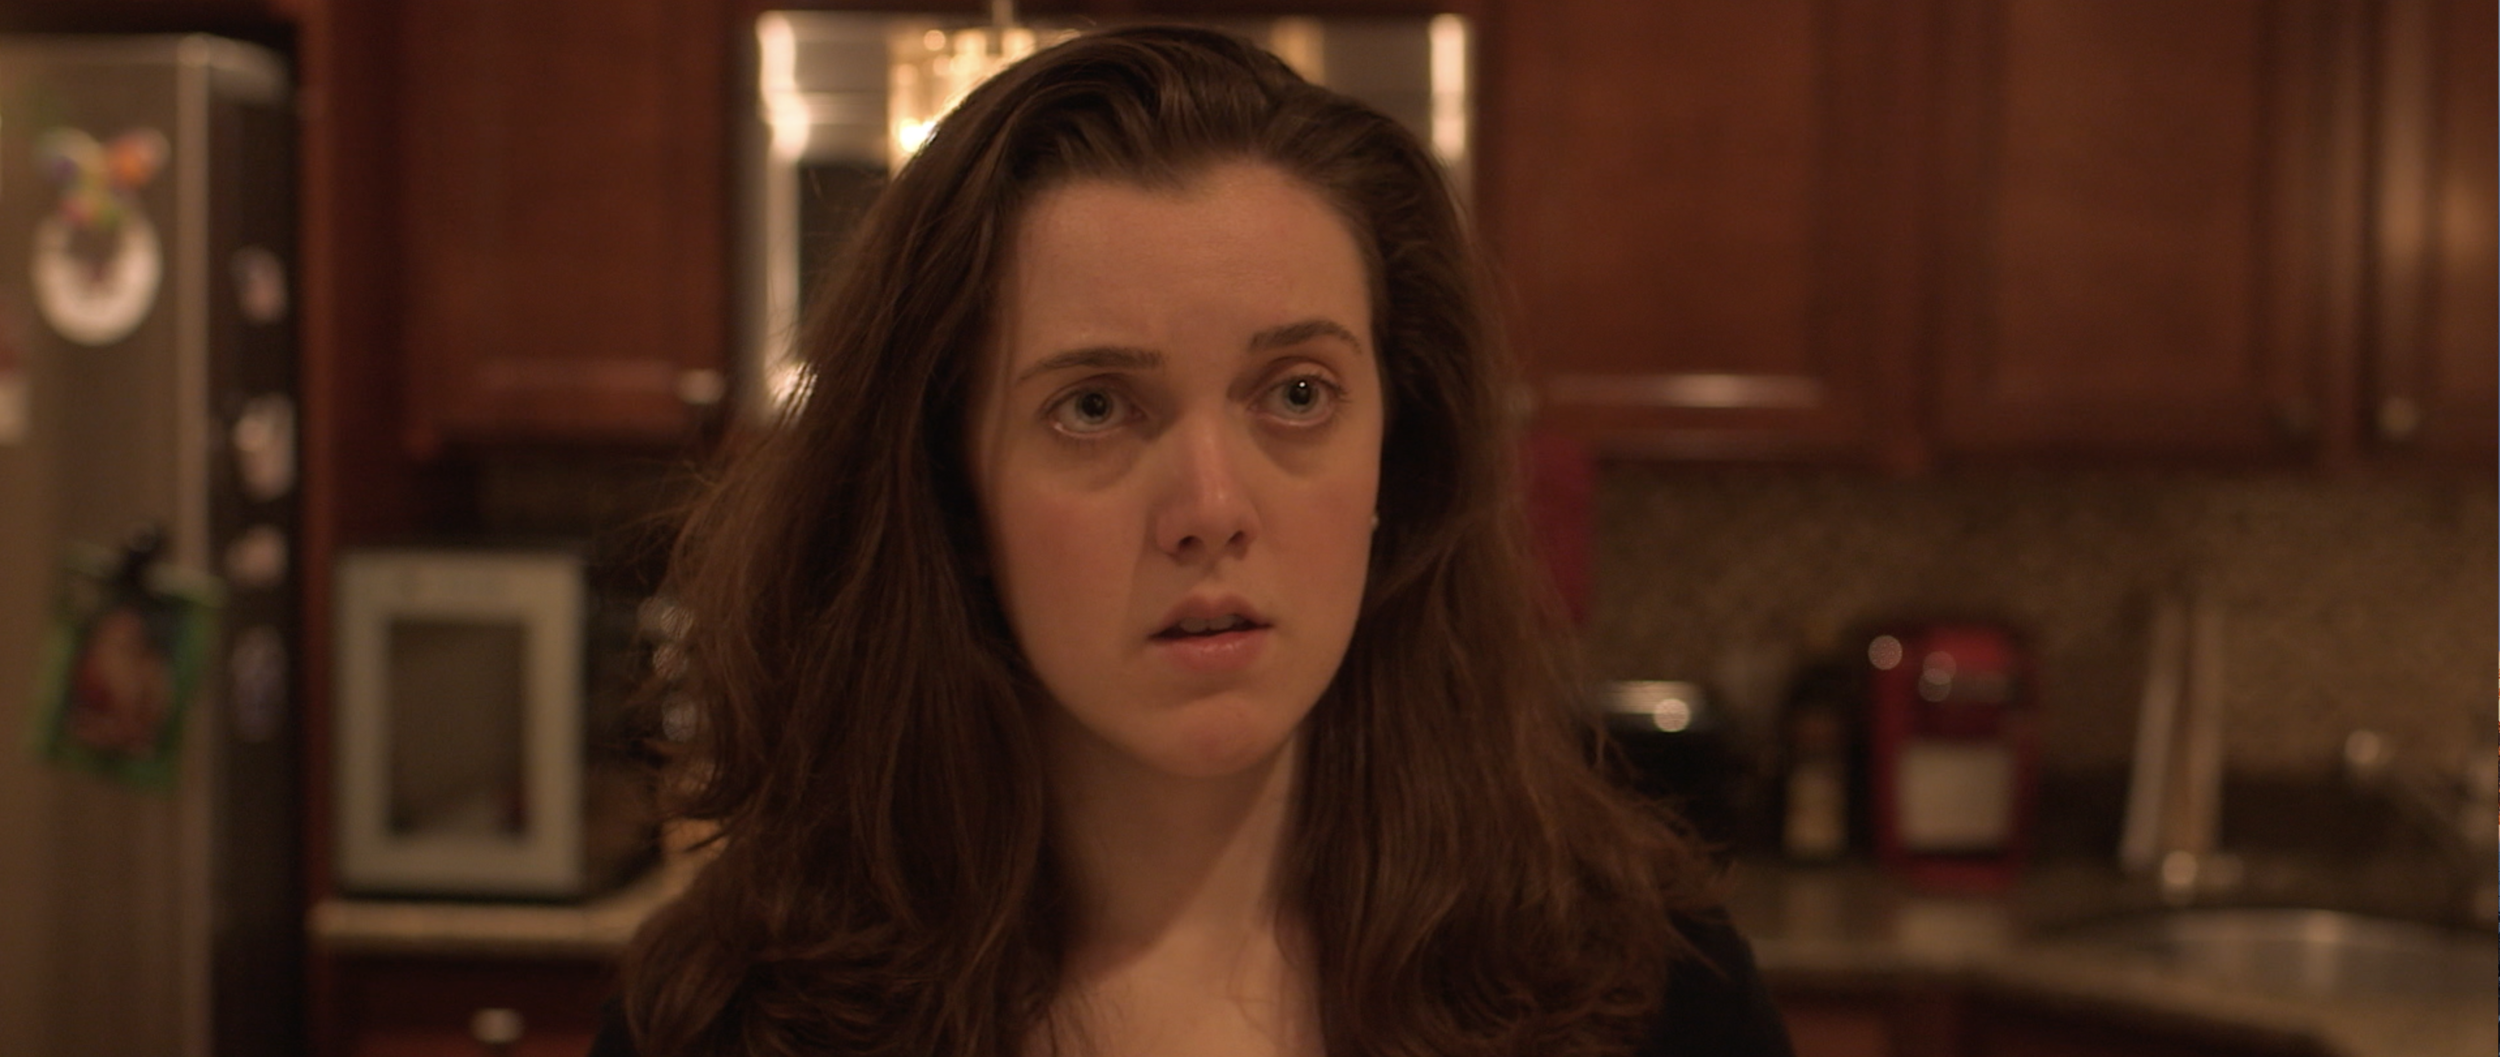 'King George the Impotent' is a short film in which Gracie (Emily Ember) steps in to try to help her brother learn what it means to be a father.